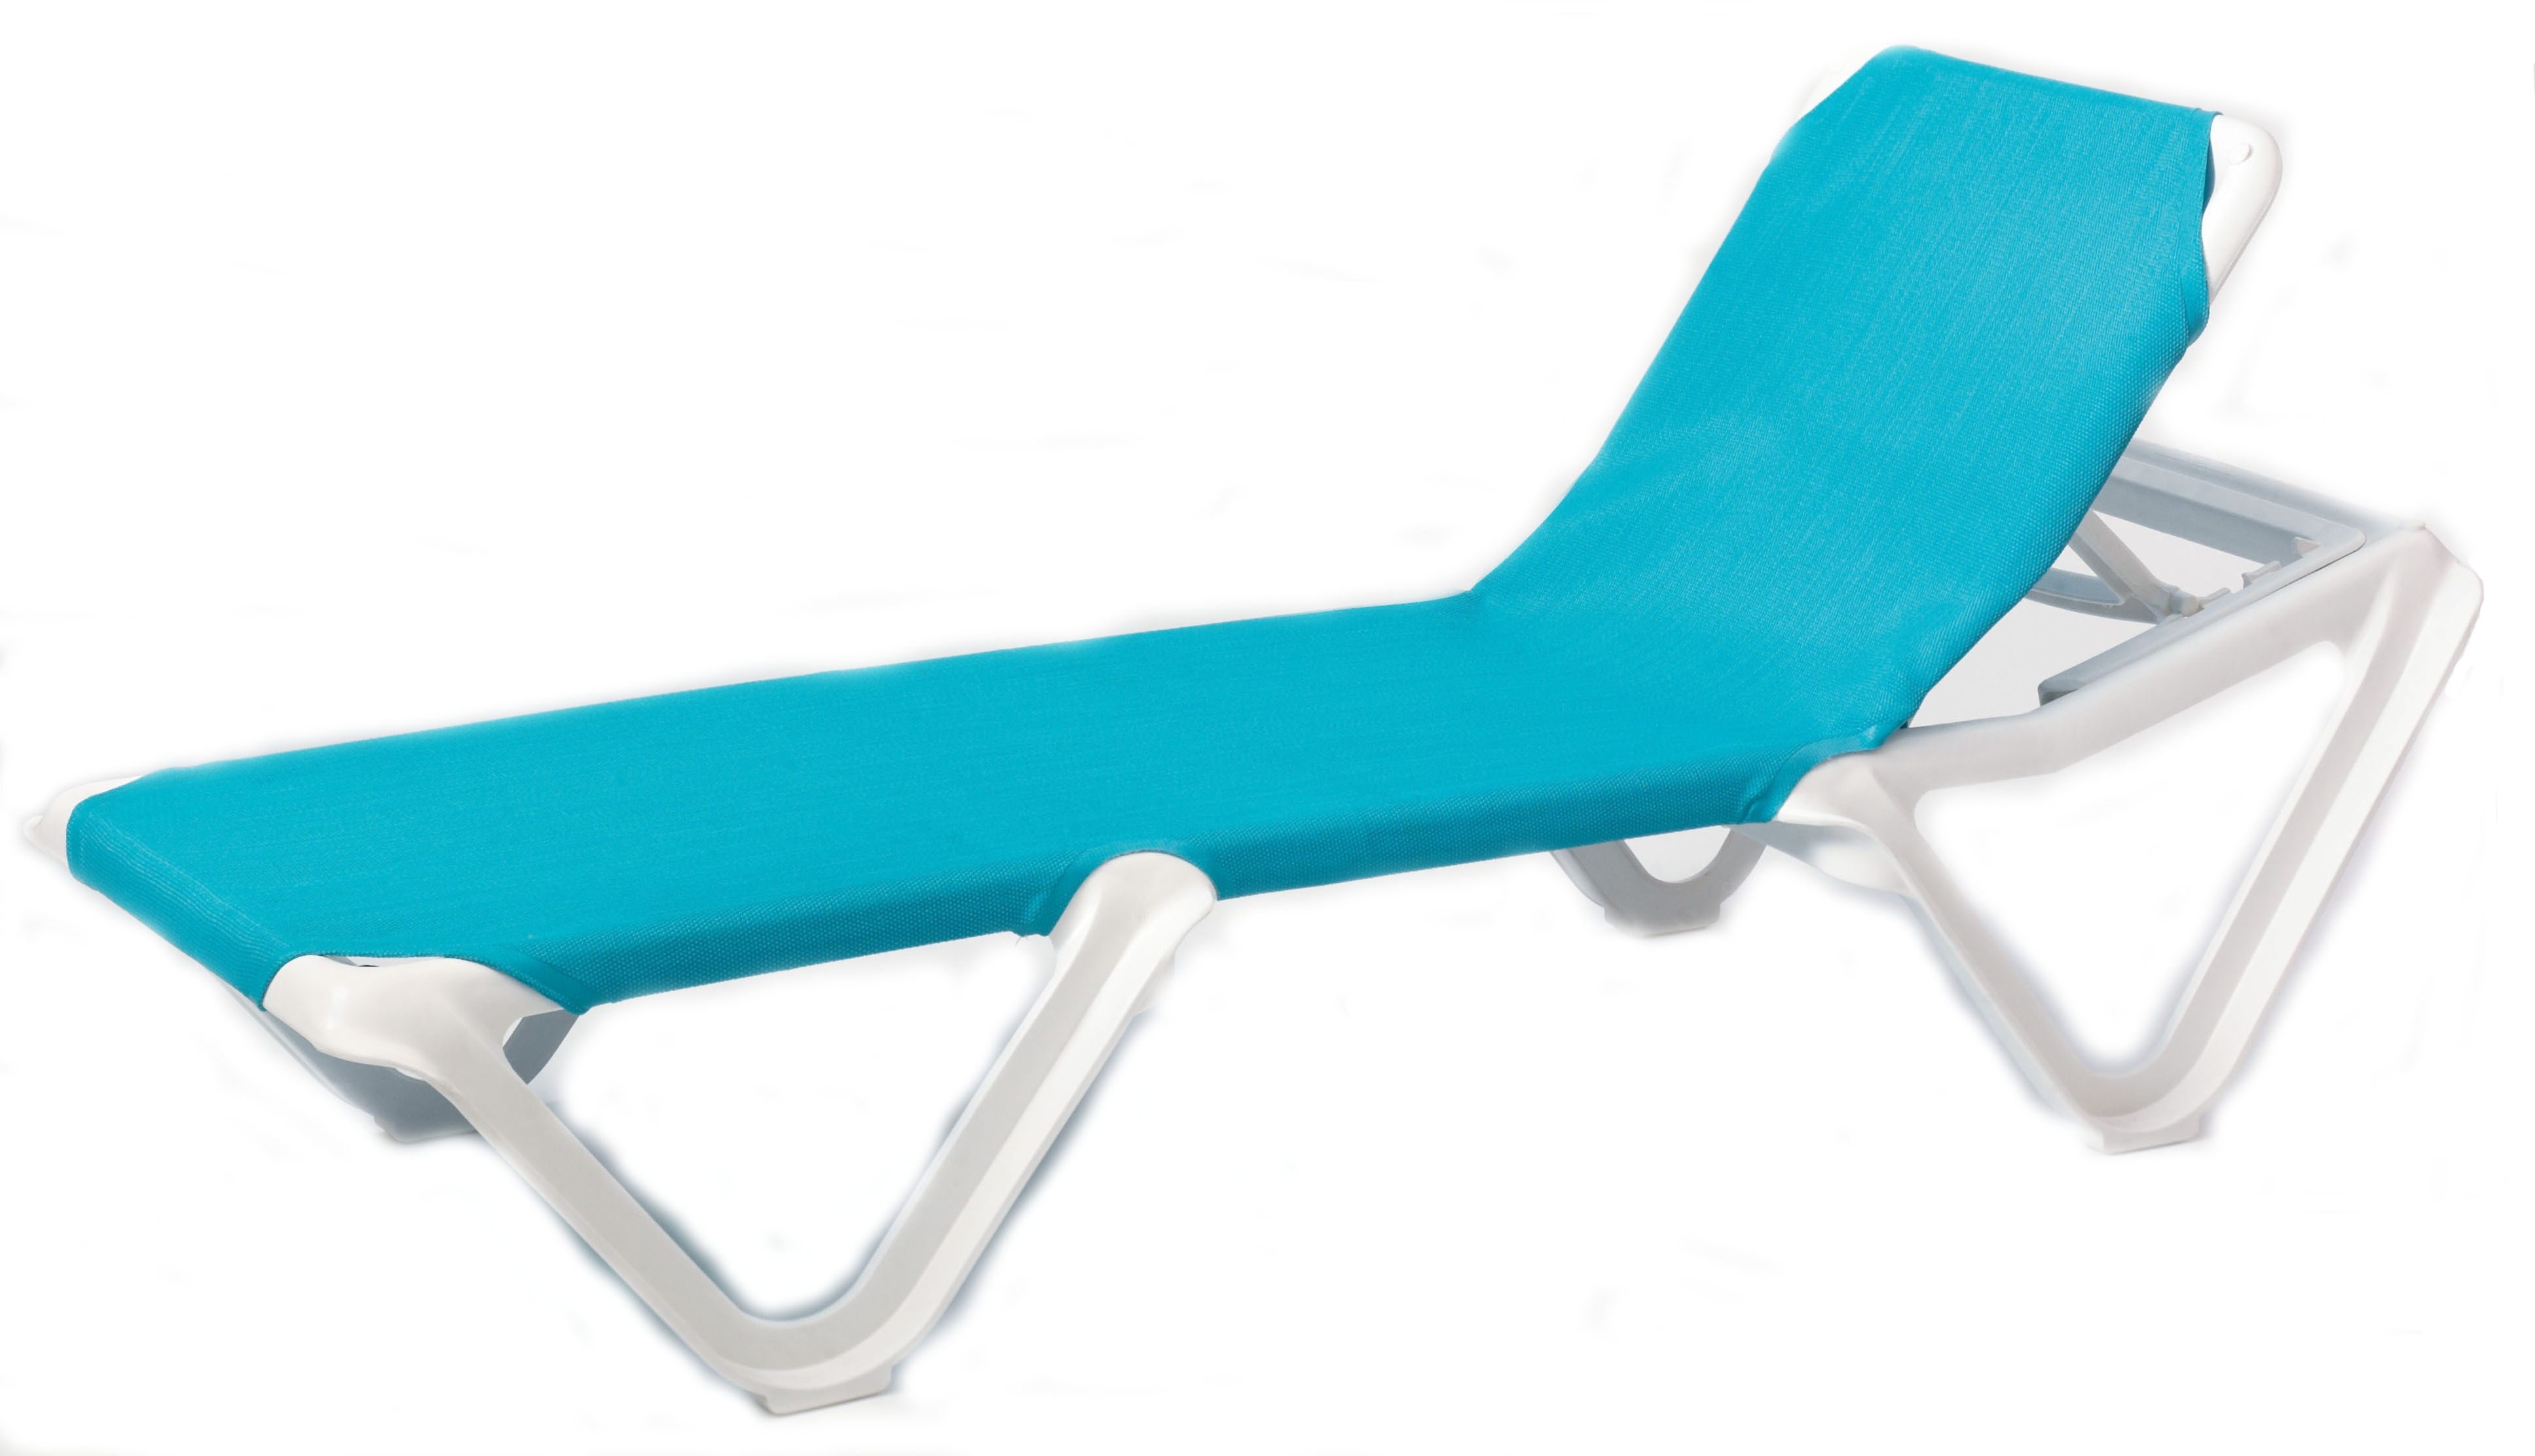 2018 Sling Chaise Lounge Chairs For Outdoor Pertaining To Grosfillex Nautical Adjustable Resin Sling Chaise Lounge Chair W/o (View 15 of 15)